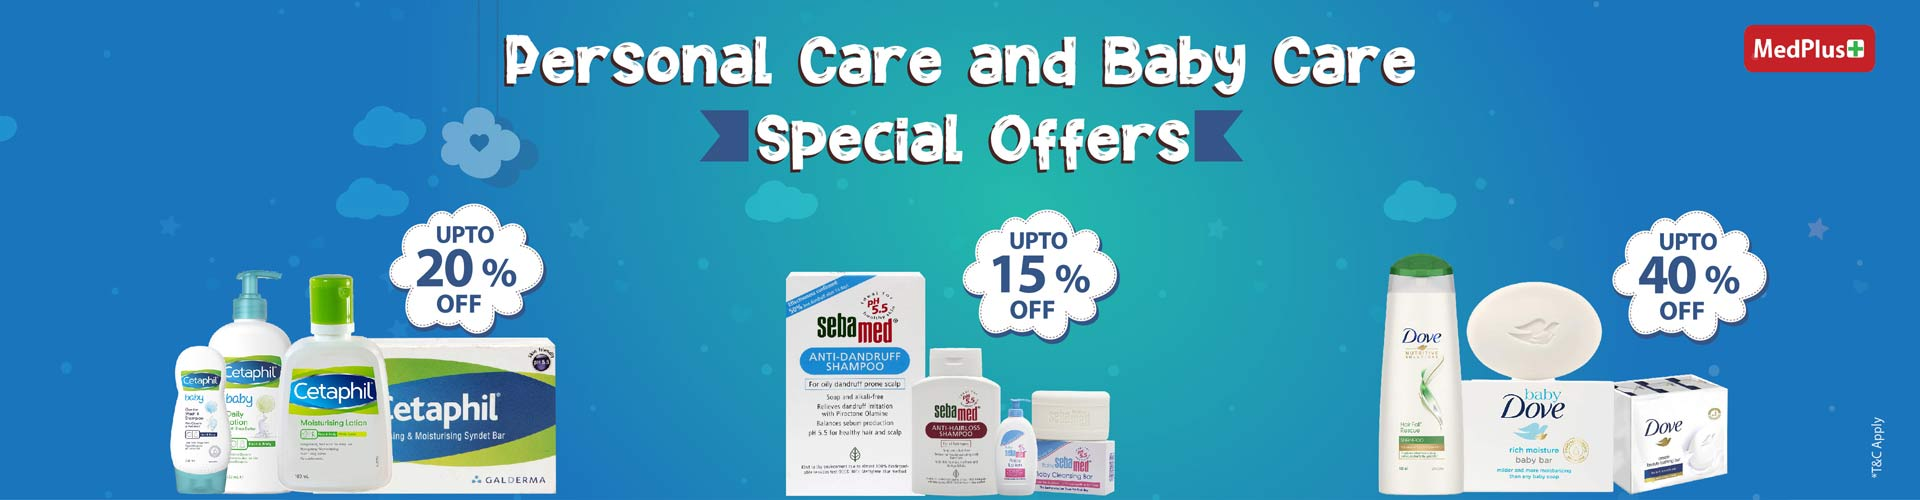 Personal and Baby Care